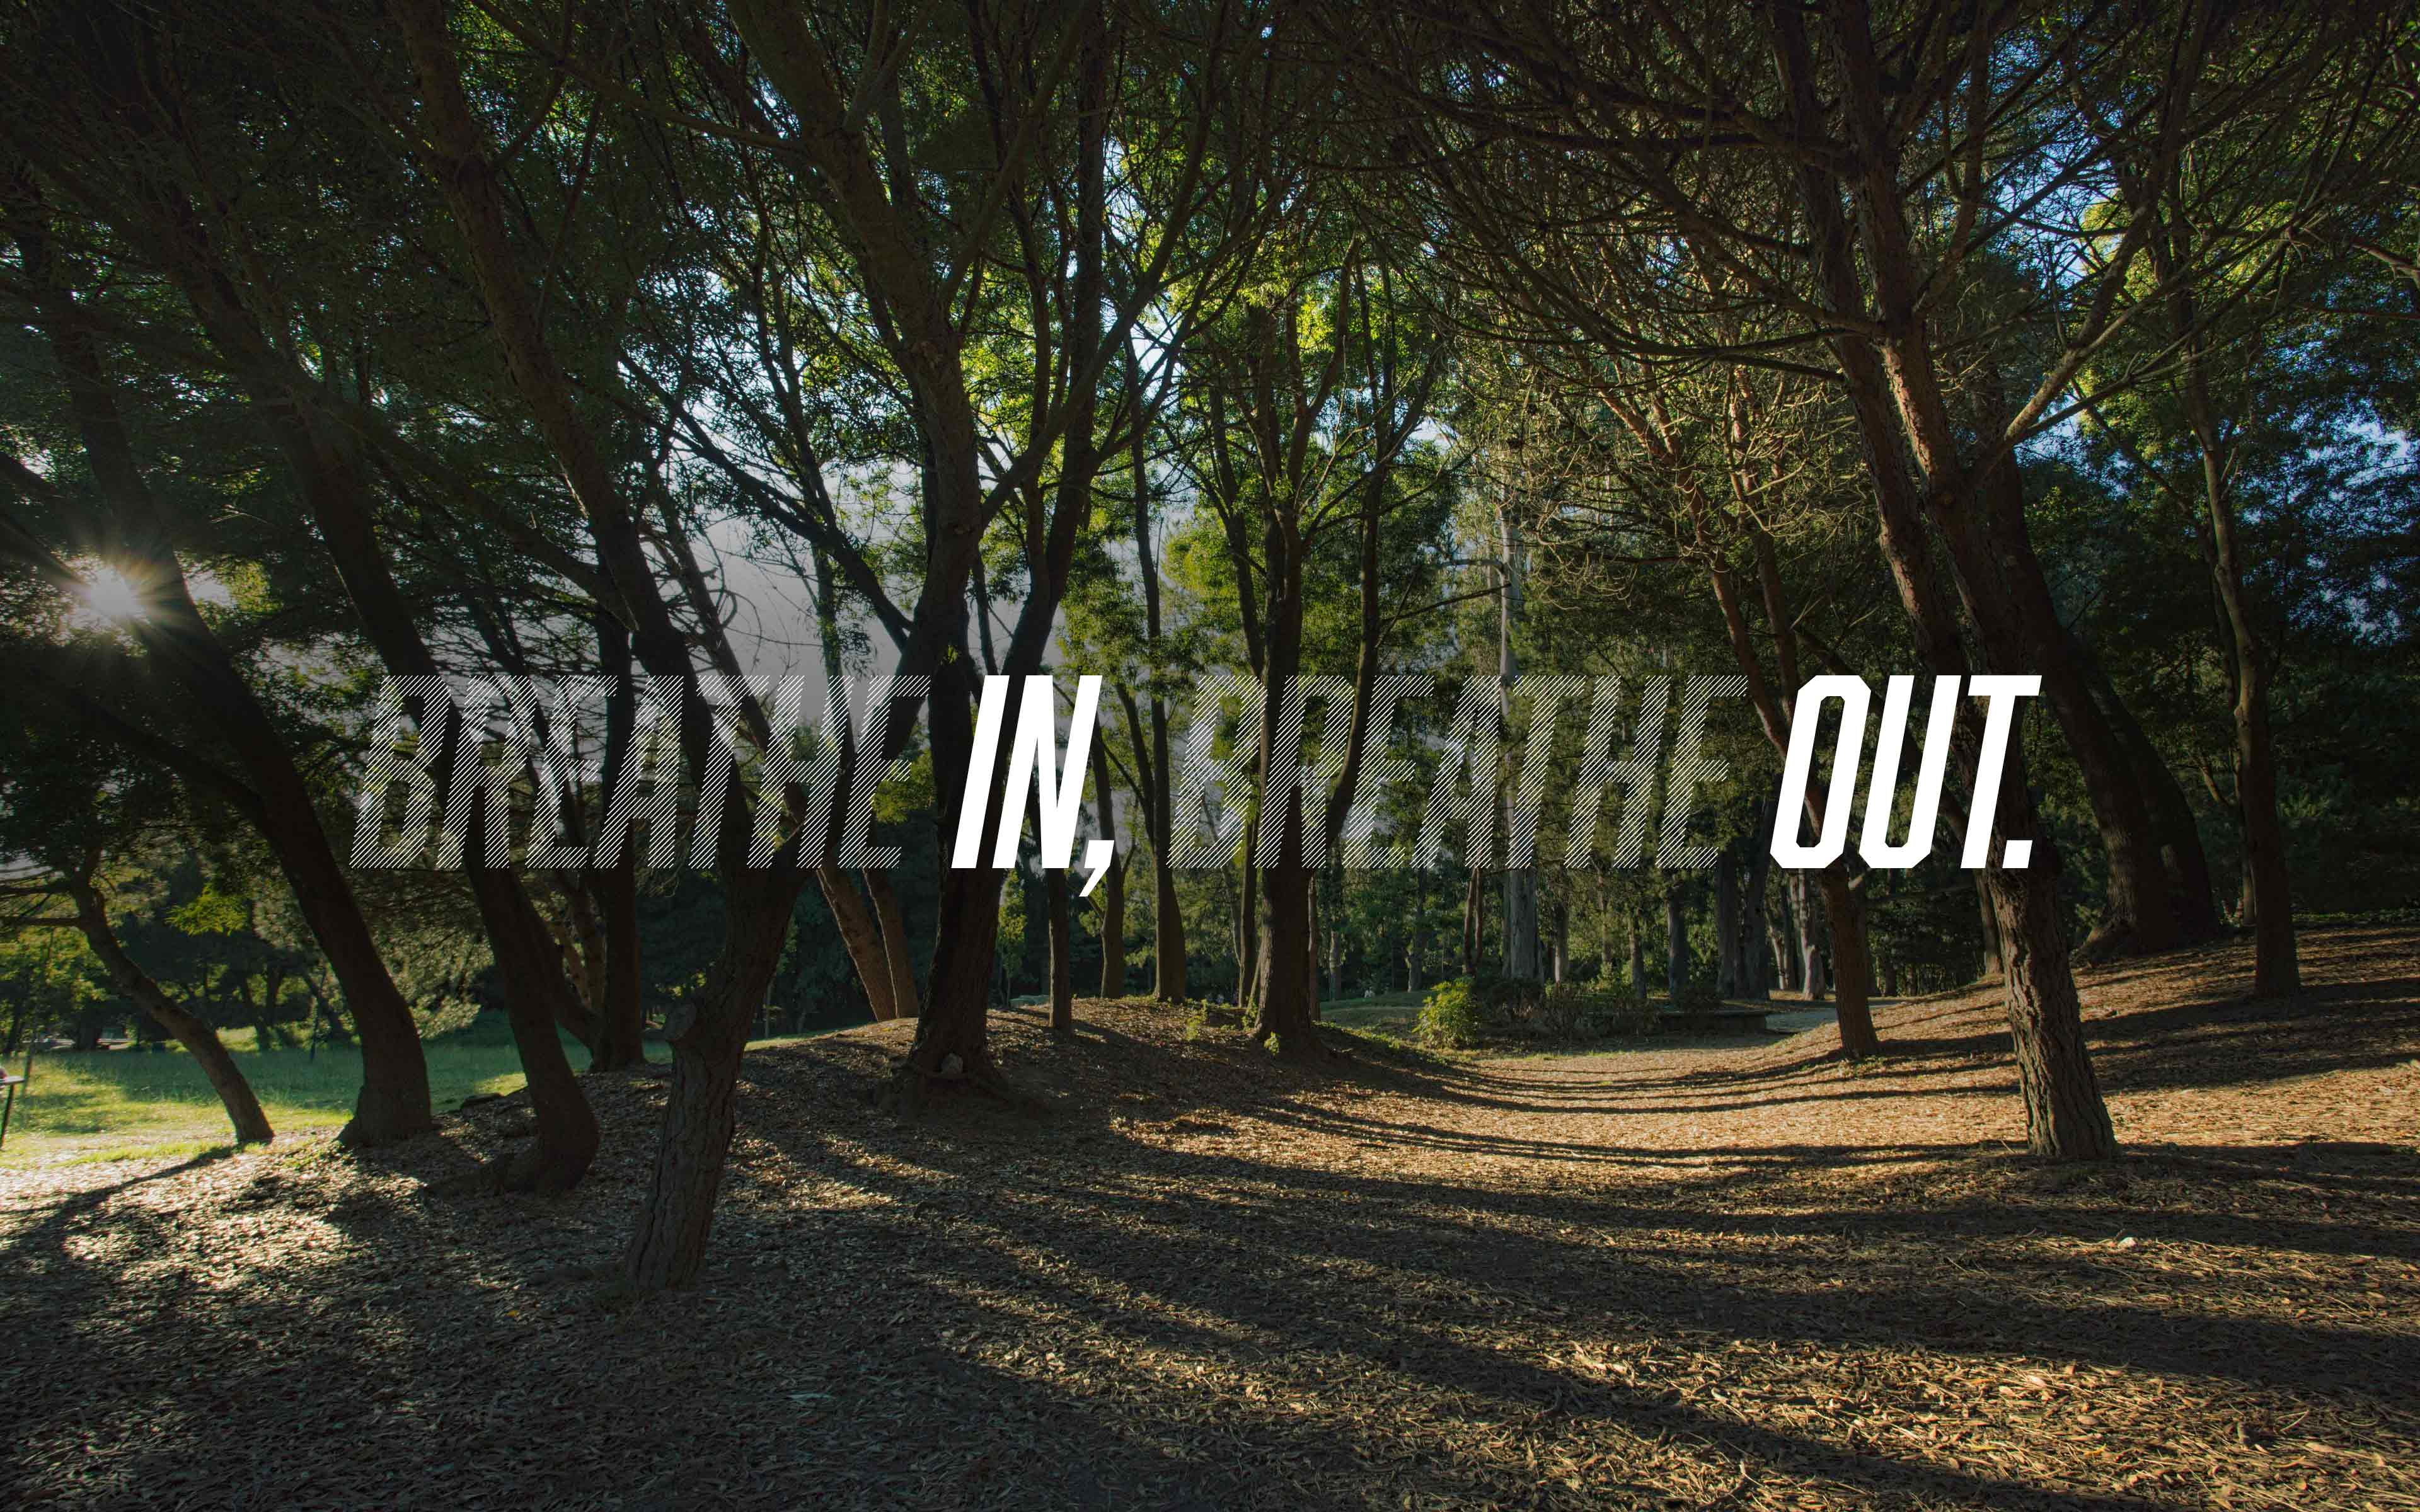 Breathin Breatheout